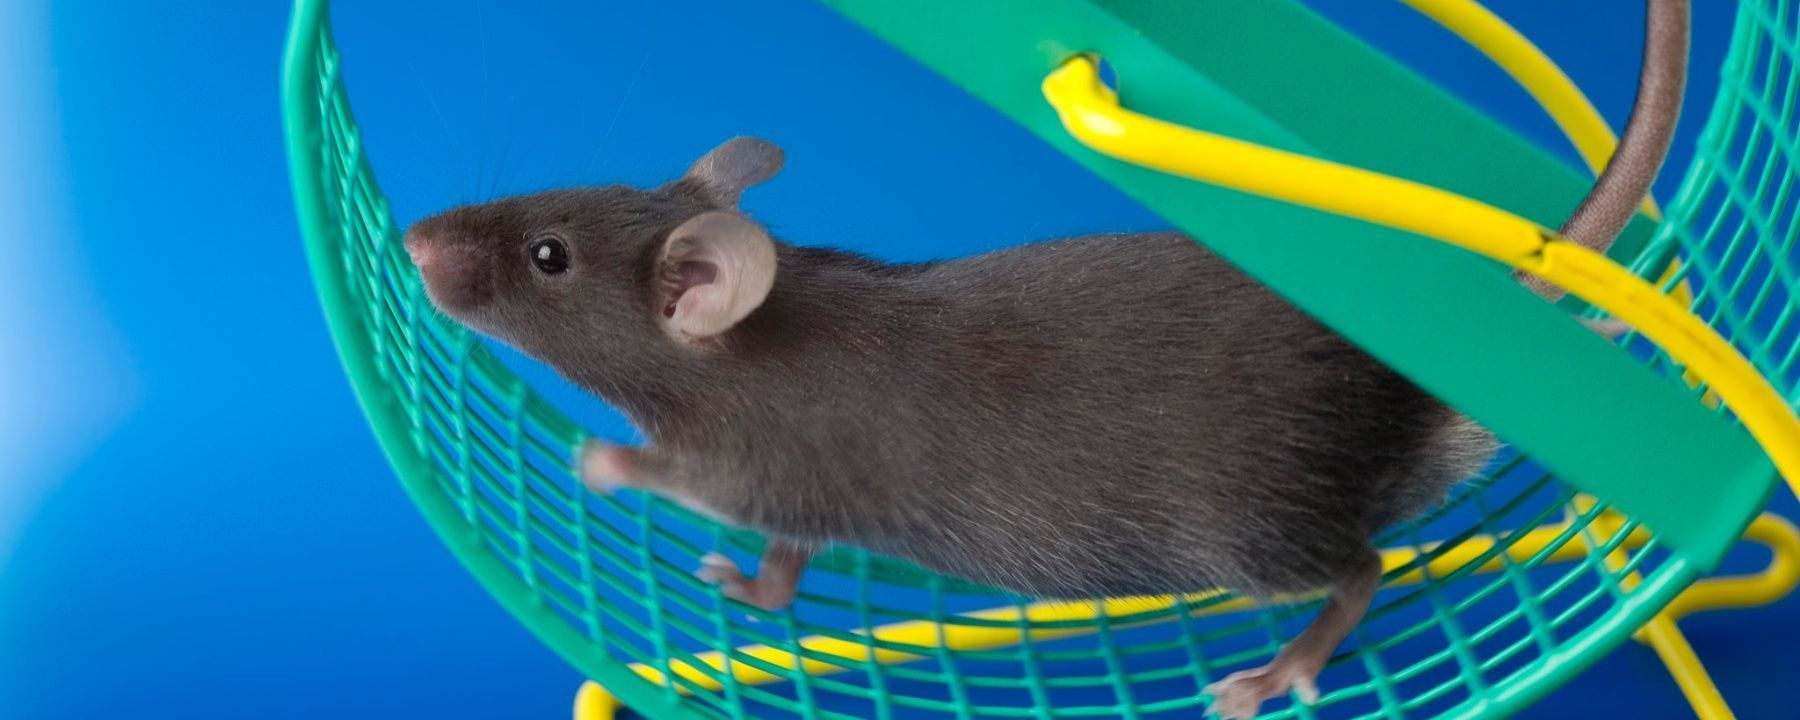 Blood Transplants from Active Mice Give Brain Boost to Others